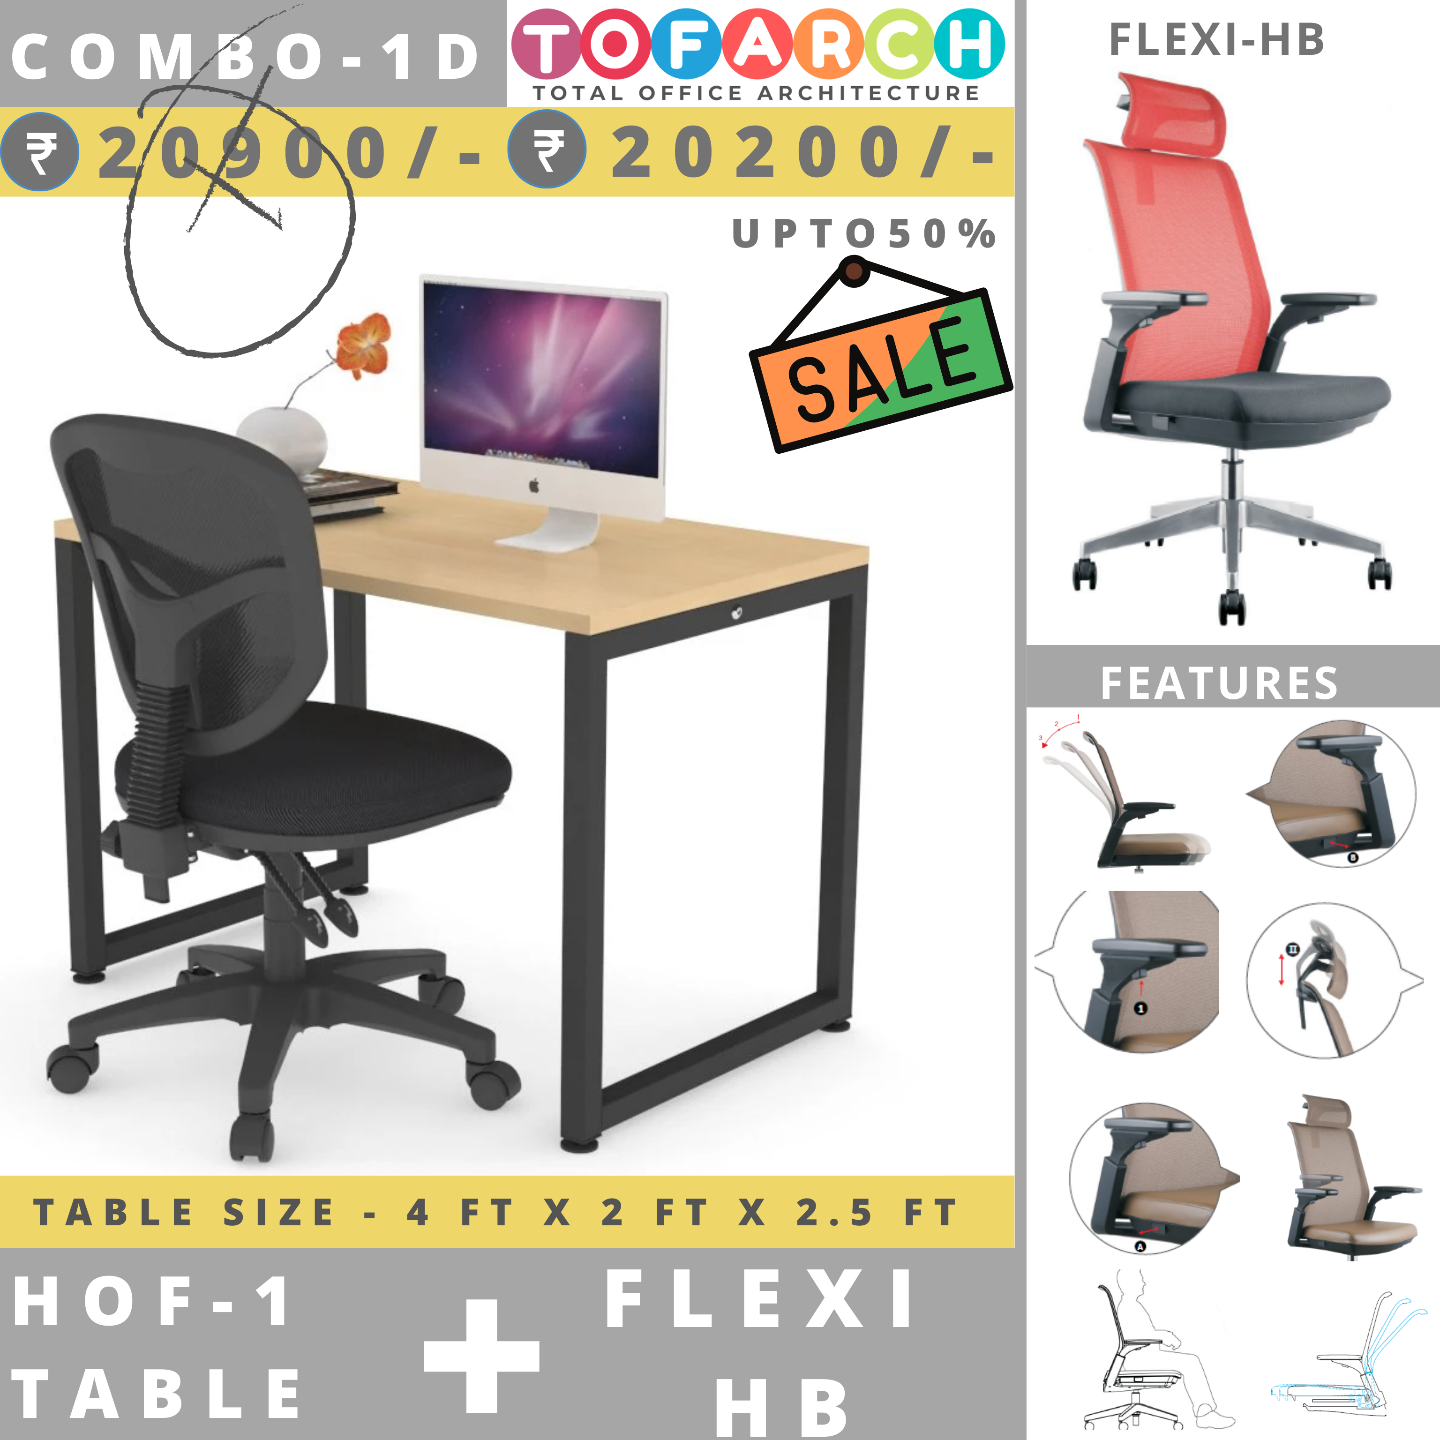 Table Chair Combo - 1D HOF 1 + Flexi-HB